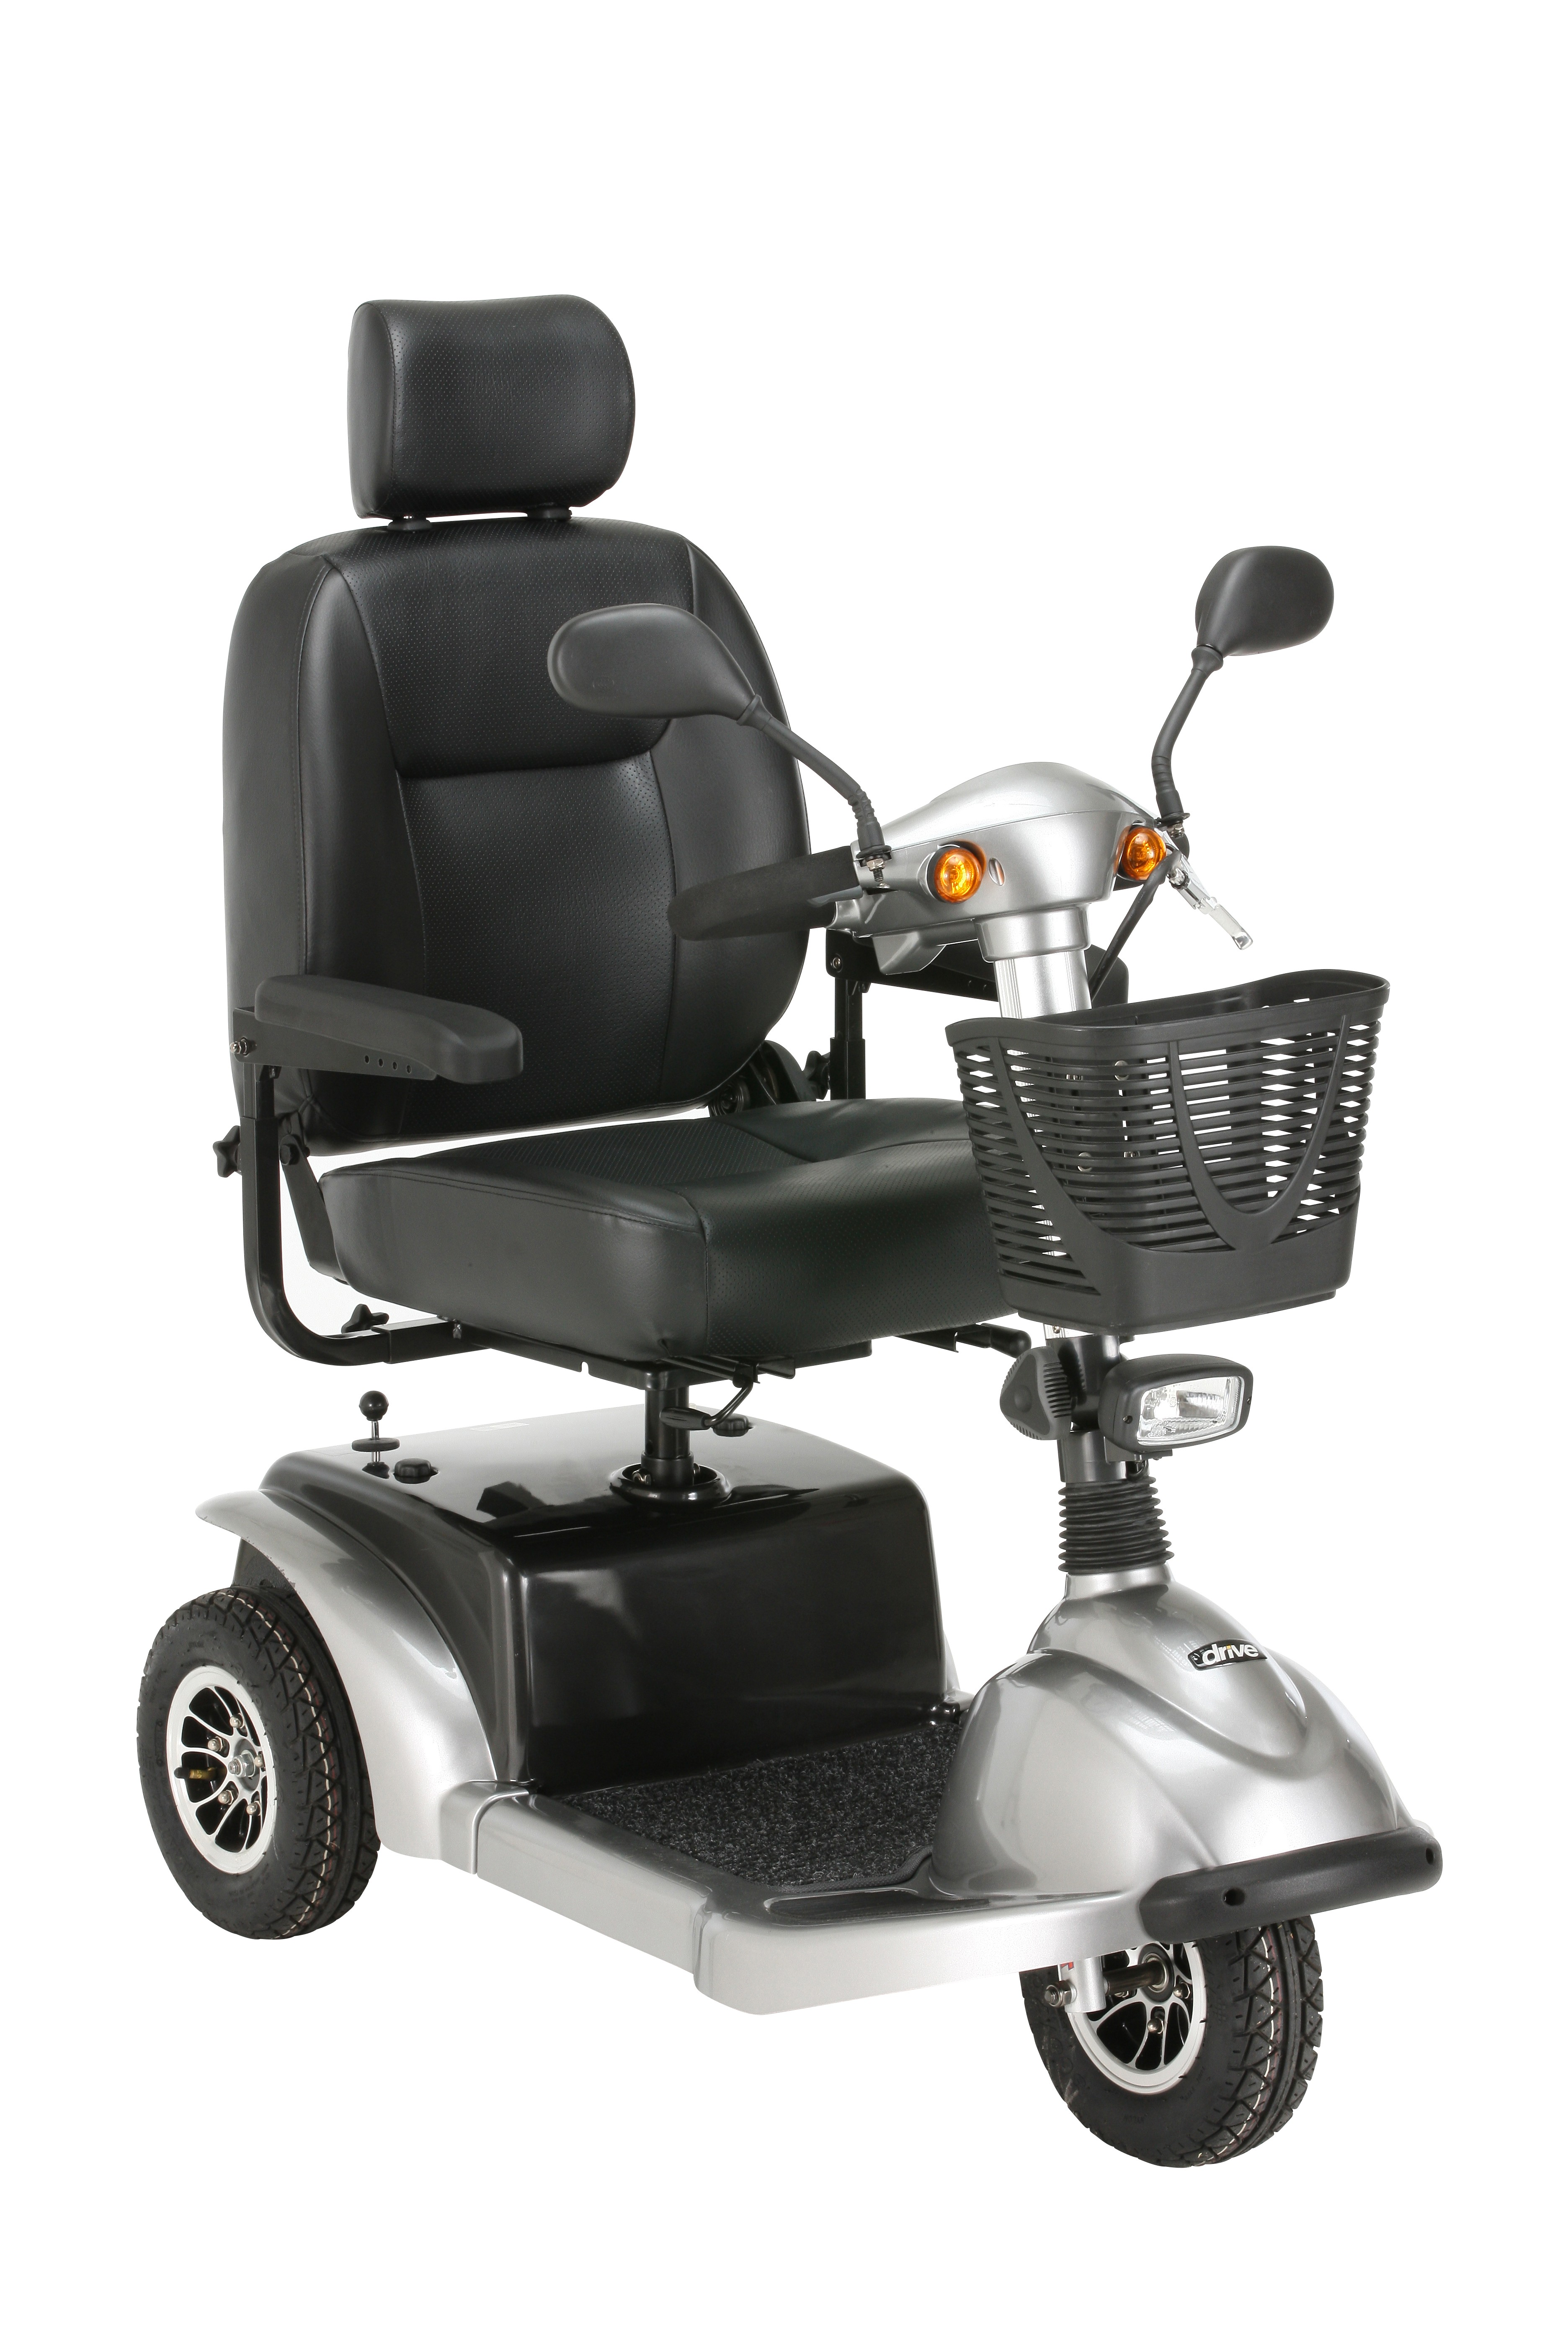 fishing chair hand wheel office mats carpet staples prowler 4 mobility scooter